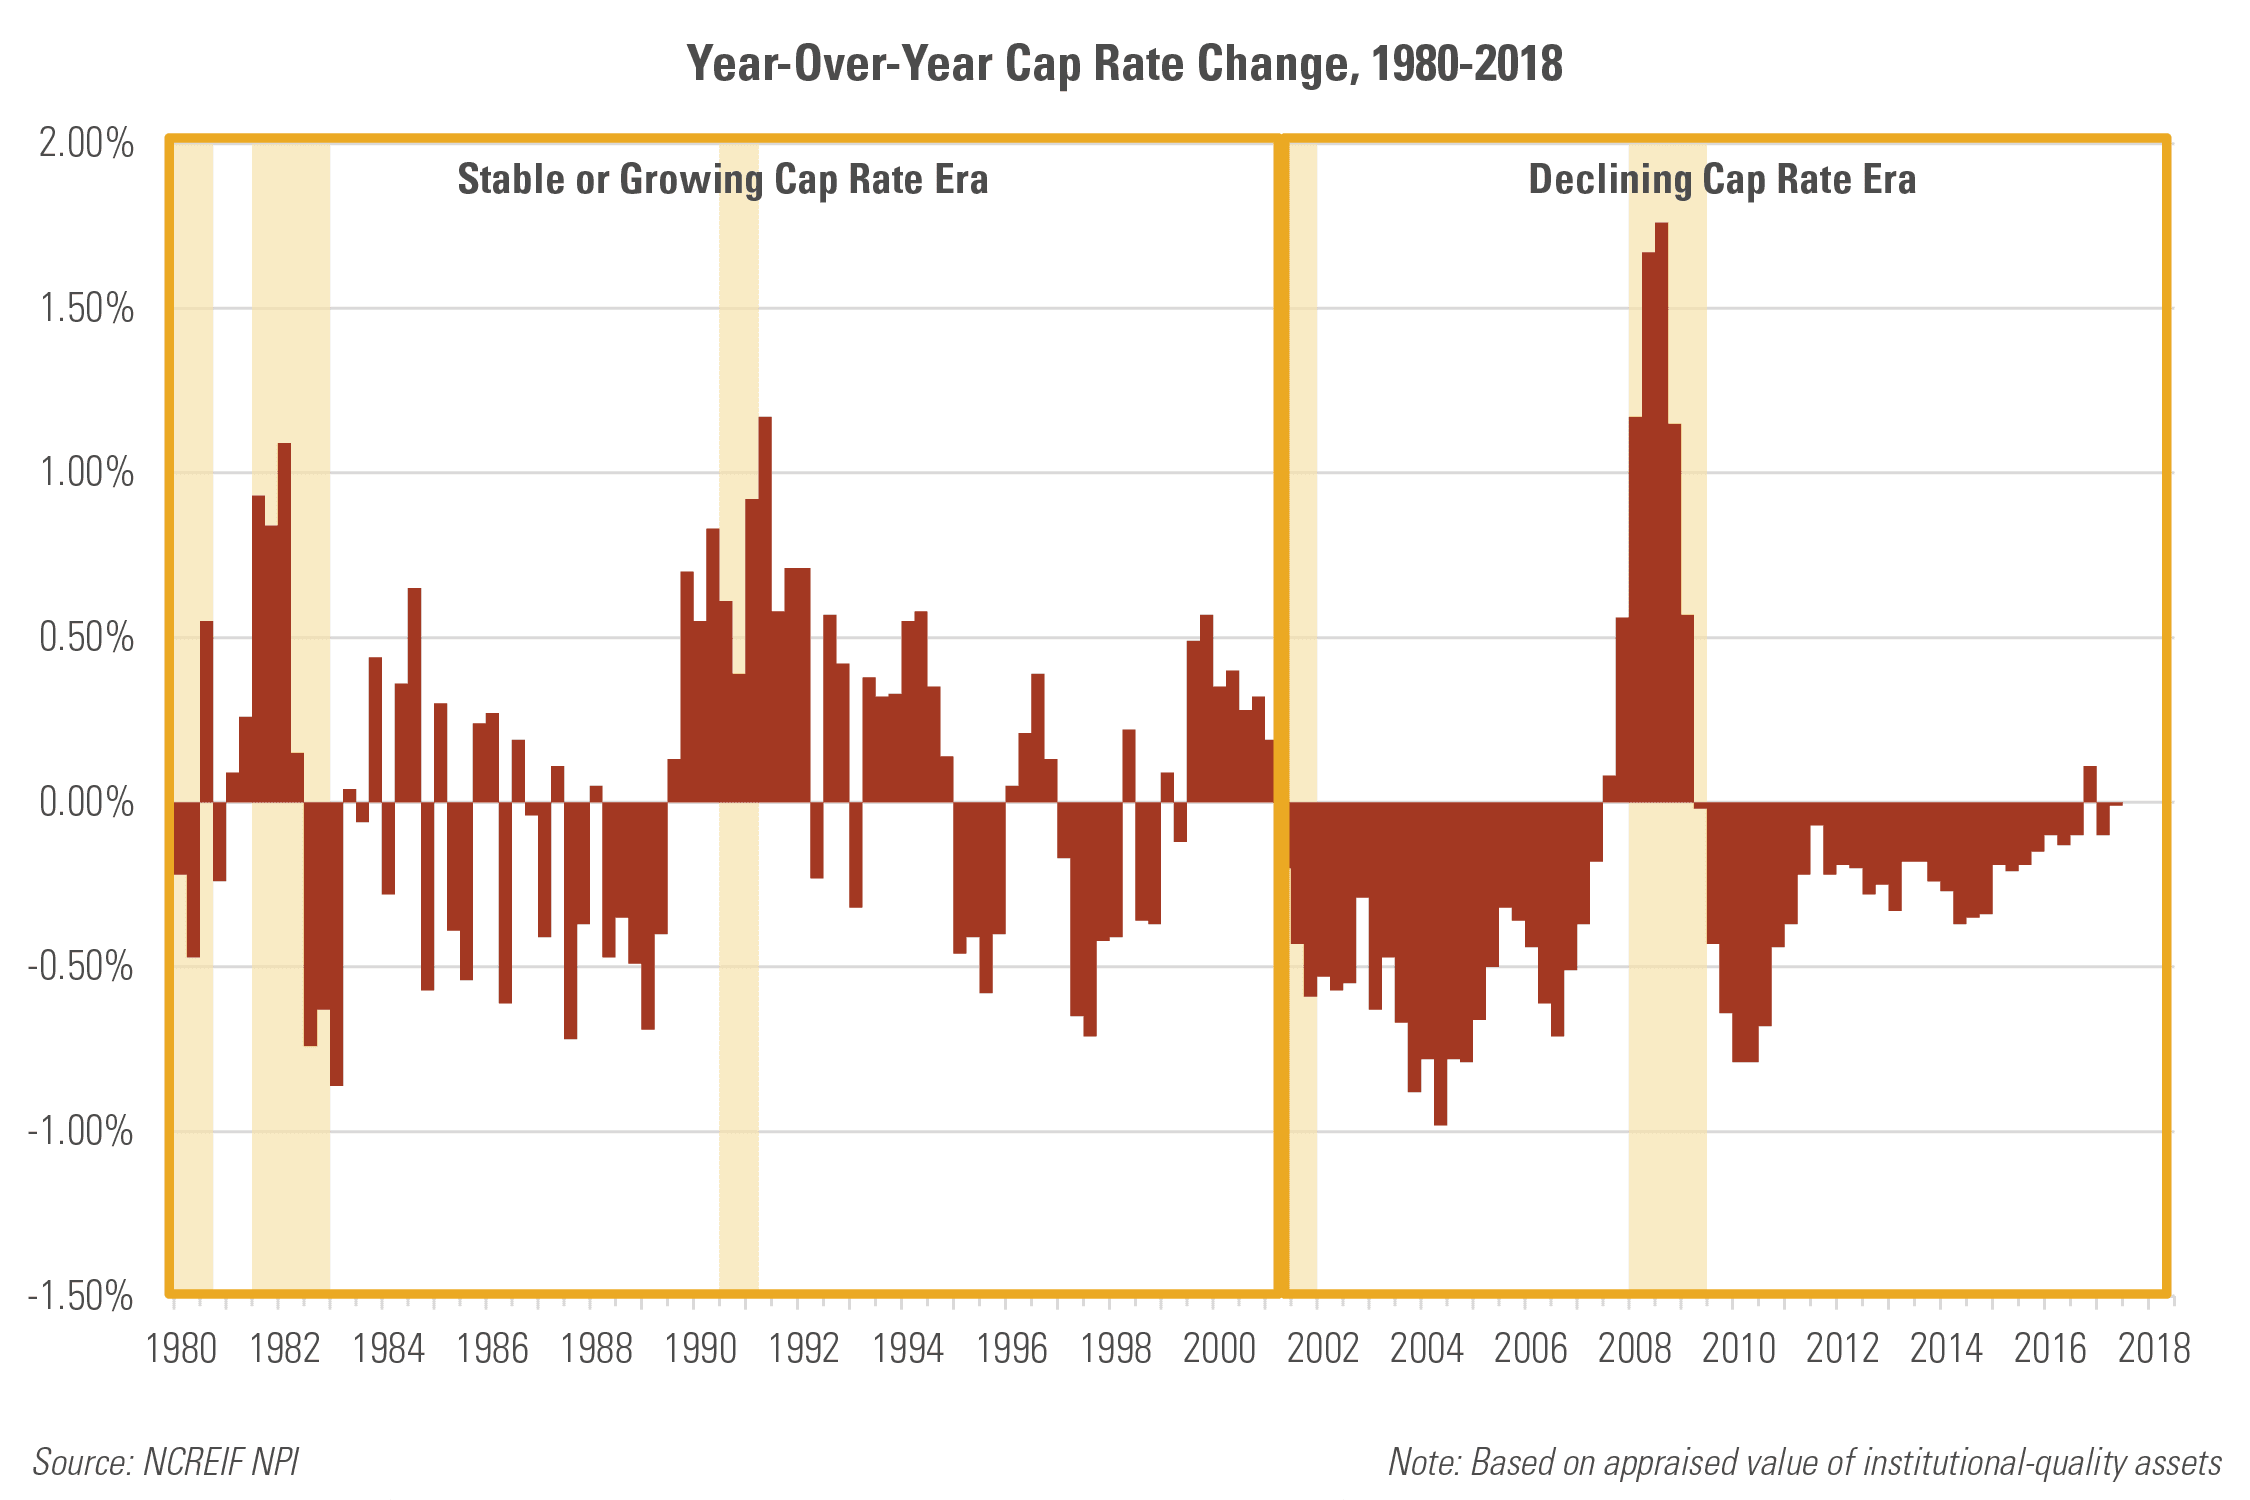 Year-over-year Cap Rate Change, 1980-2018